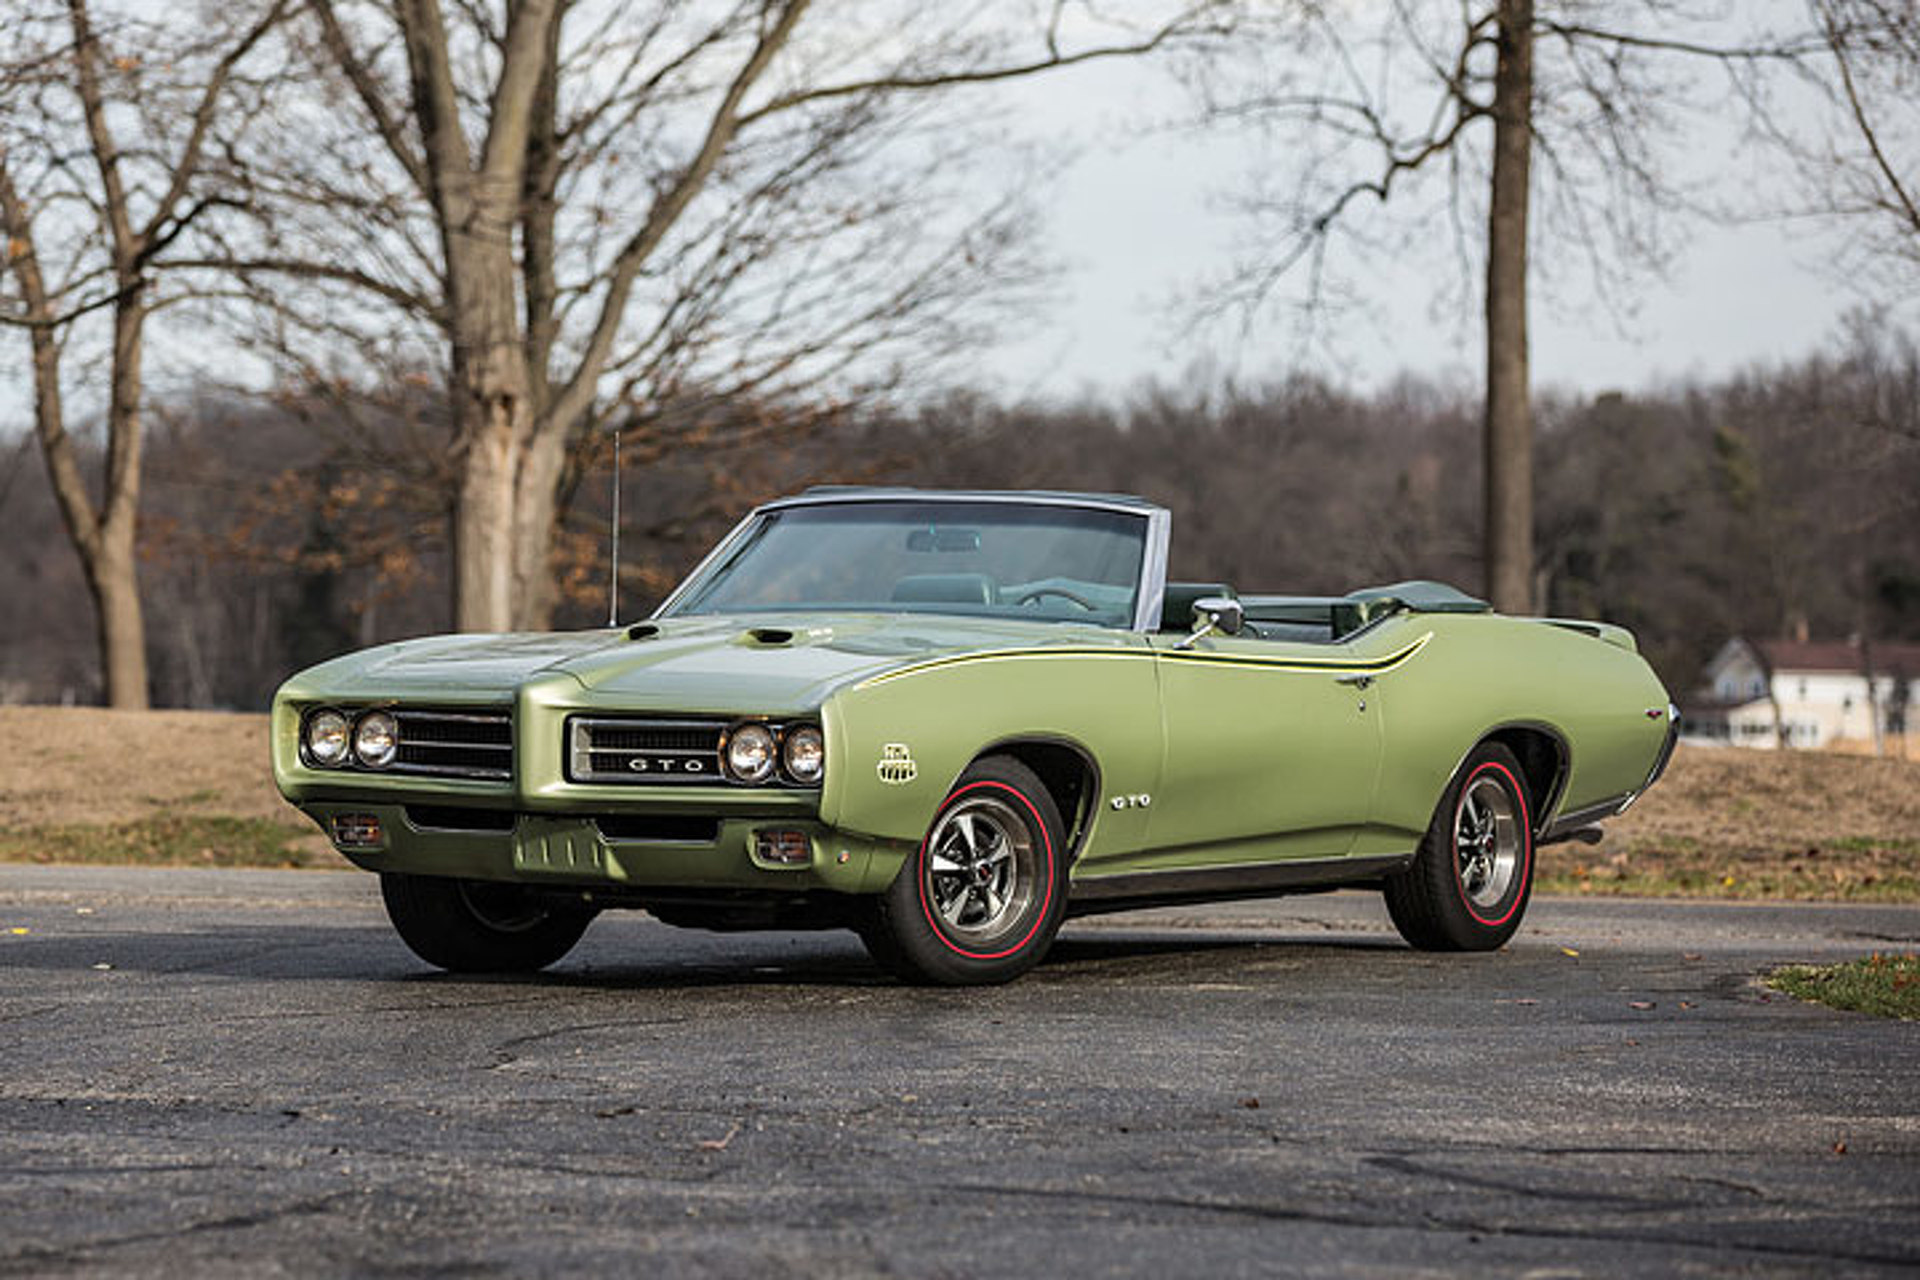 meet the only triple green 69 pontiac gto judge in the world